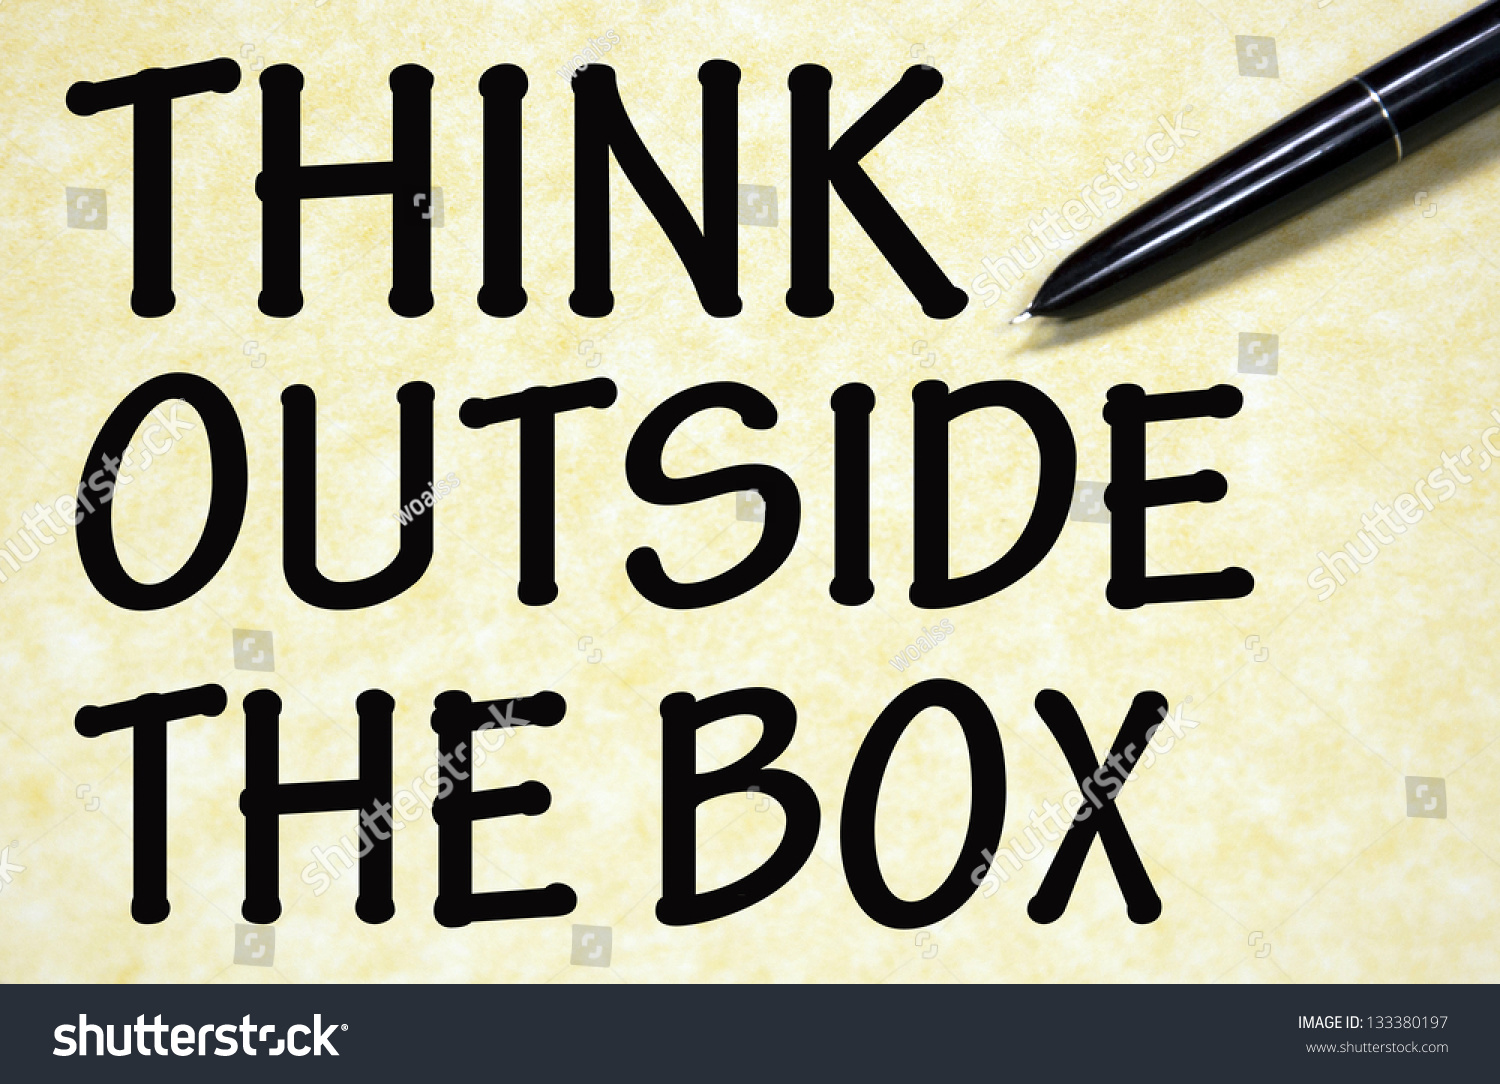 think outside box title written pen stock photo 133380197 shutterstock. Black Bedroom Furniture Sets. Home Design Ideas